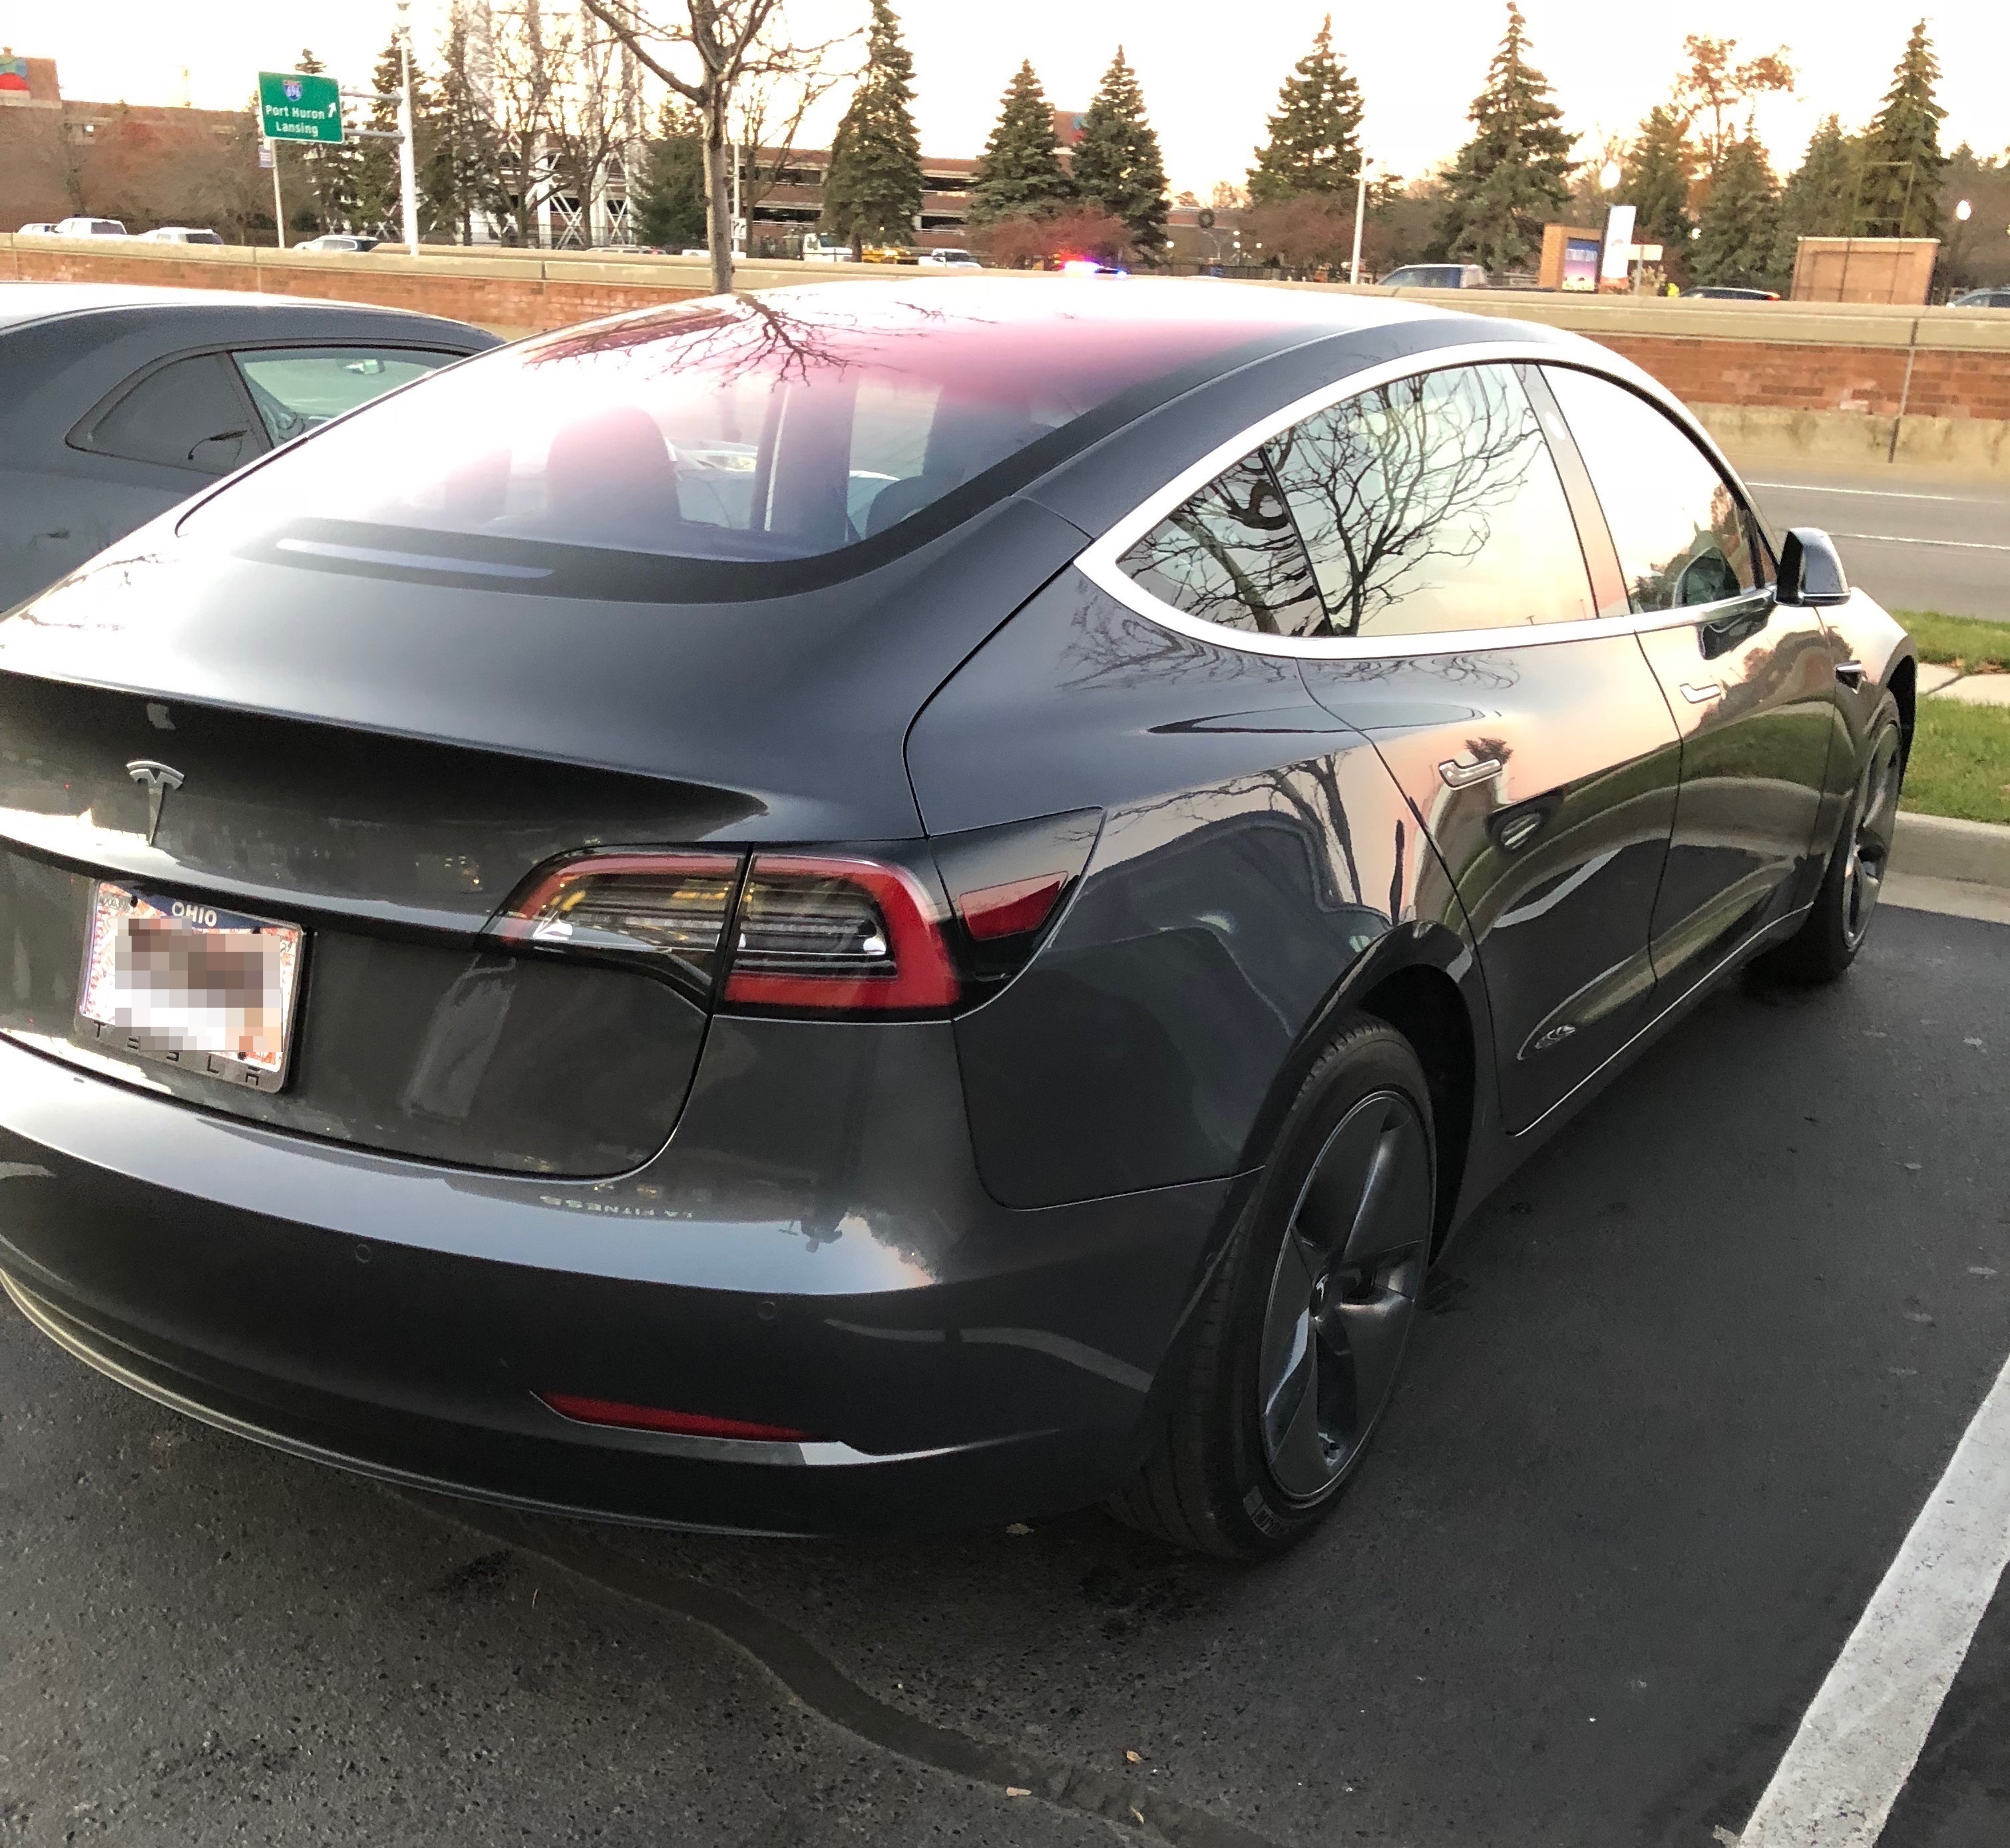 Tesla Model 3 spotted in Michigan despite vehicle sales ban in state